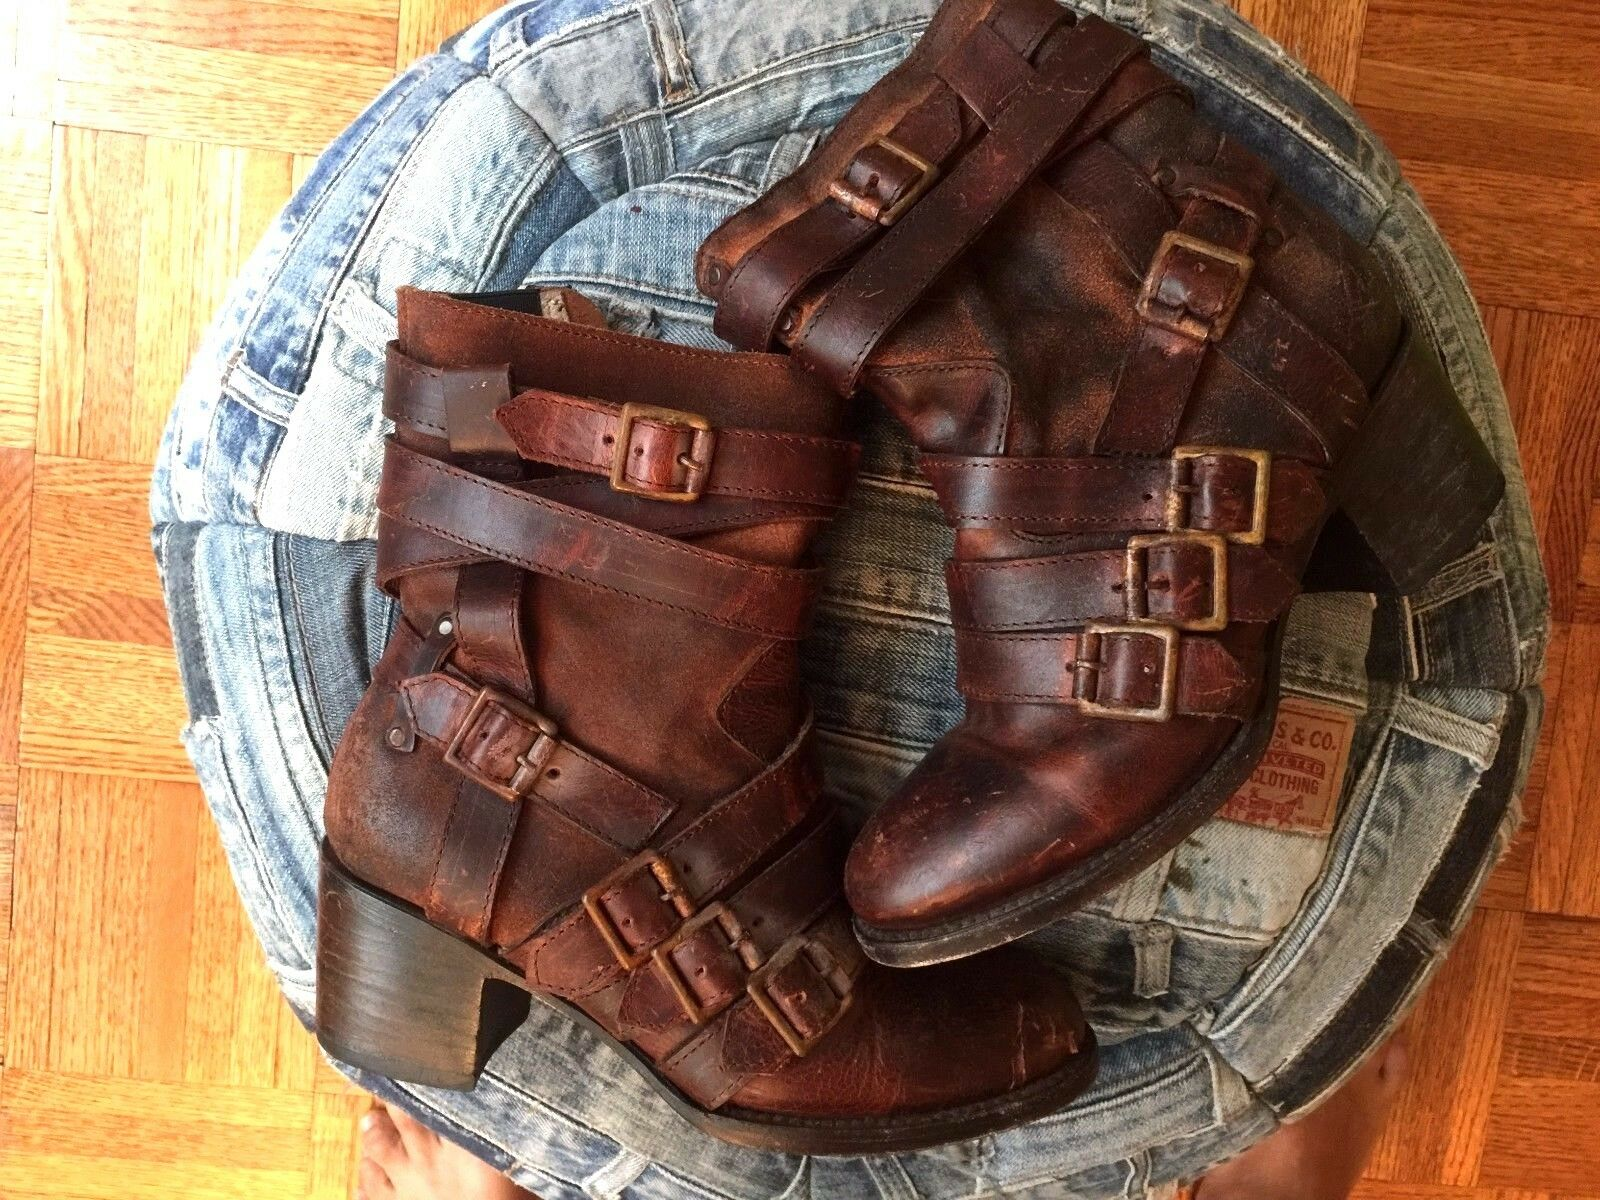 FREEBIRD Colt Boots Leather Brown Women's US 7 Straps Buckles Steampunk Boho